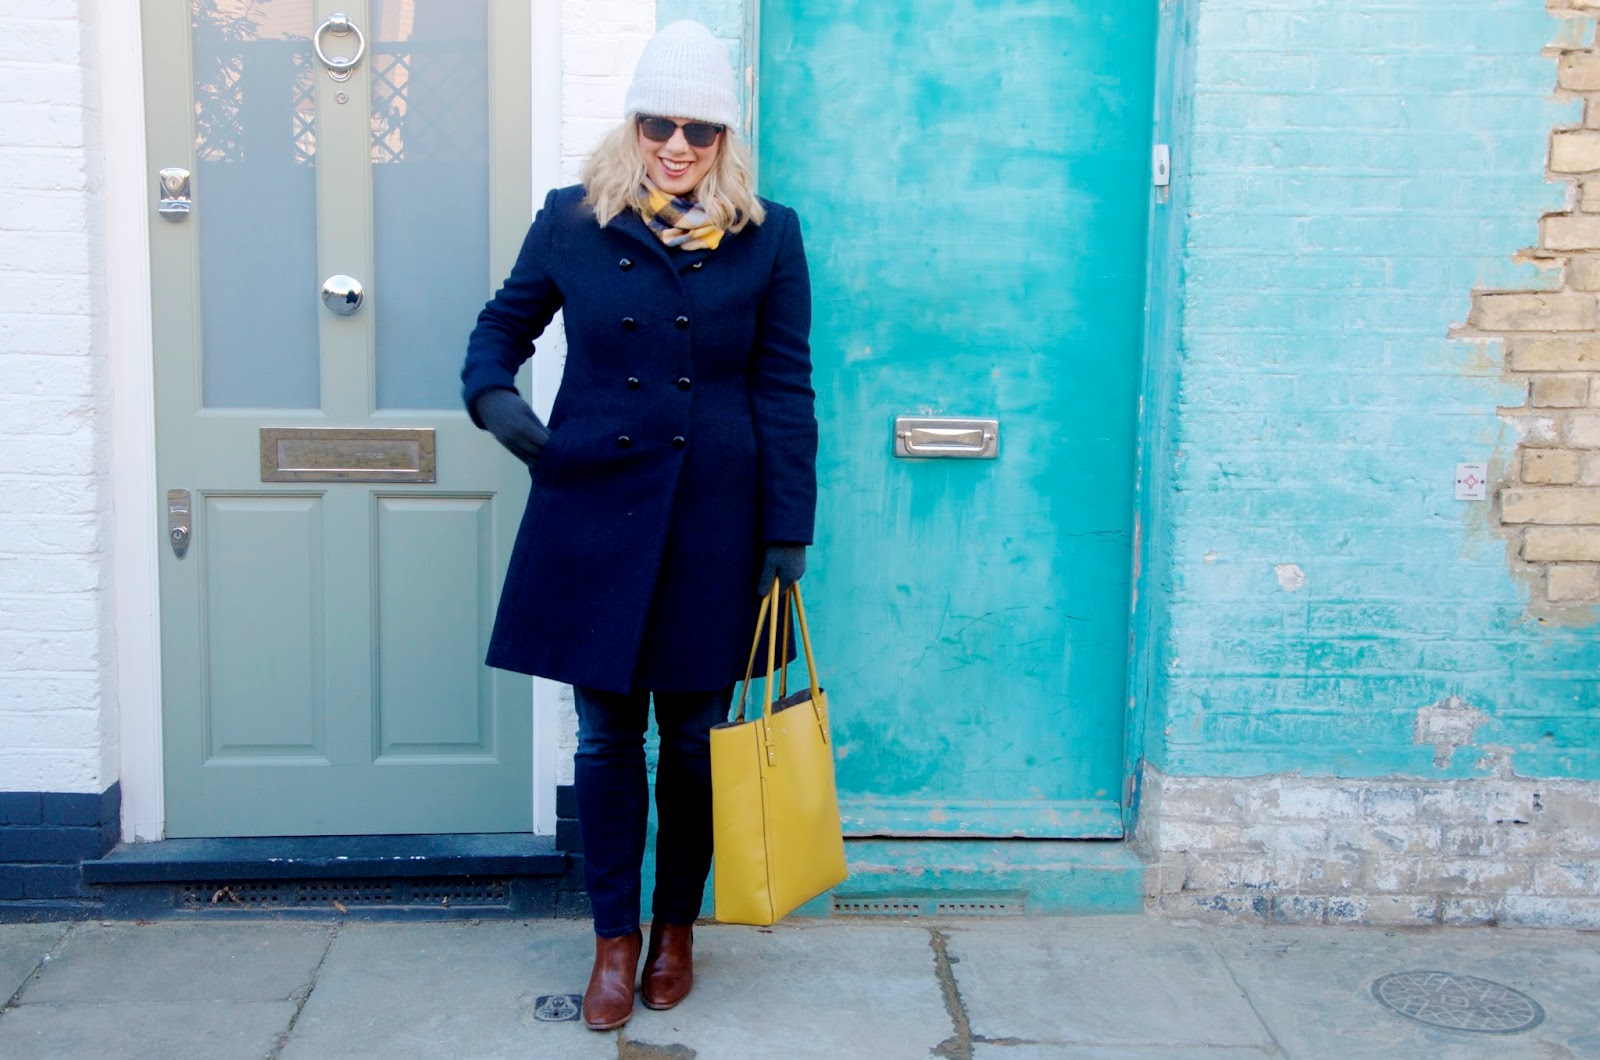 grey knit hat, navy coat, yellow bag, plaid scarf, jeans, yellow bag and grey gloves